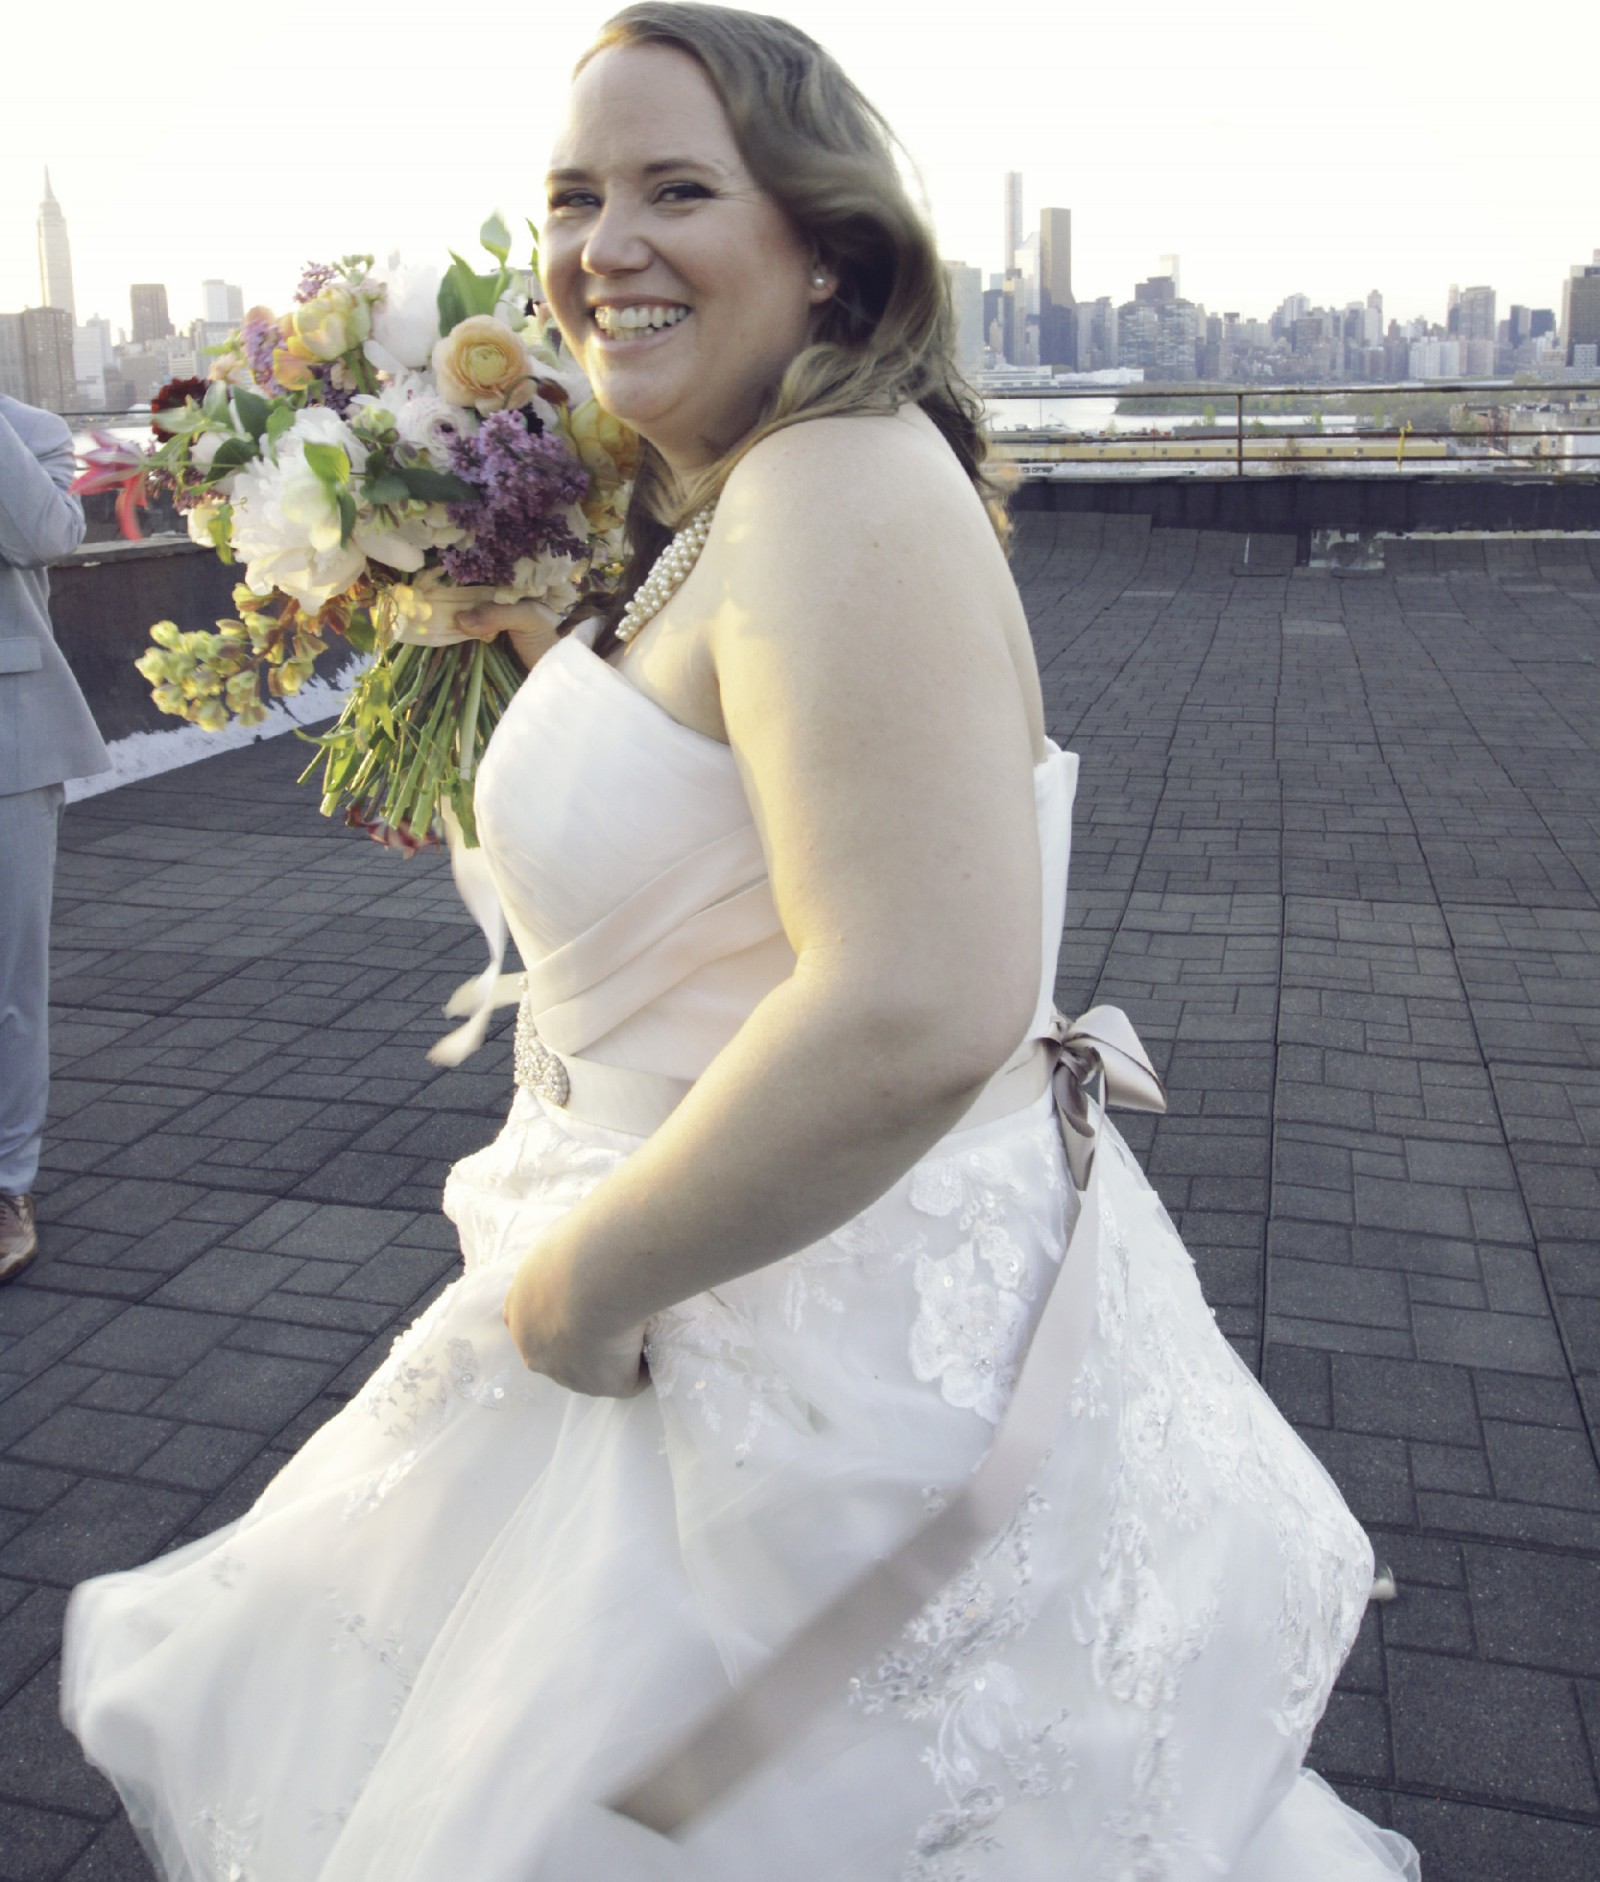 Henry Roth Second Hand Wedding Dress On Sale 82 Off: Henry Roth Eleanor Second Hand Wedding Dress On Sale 65